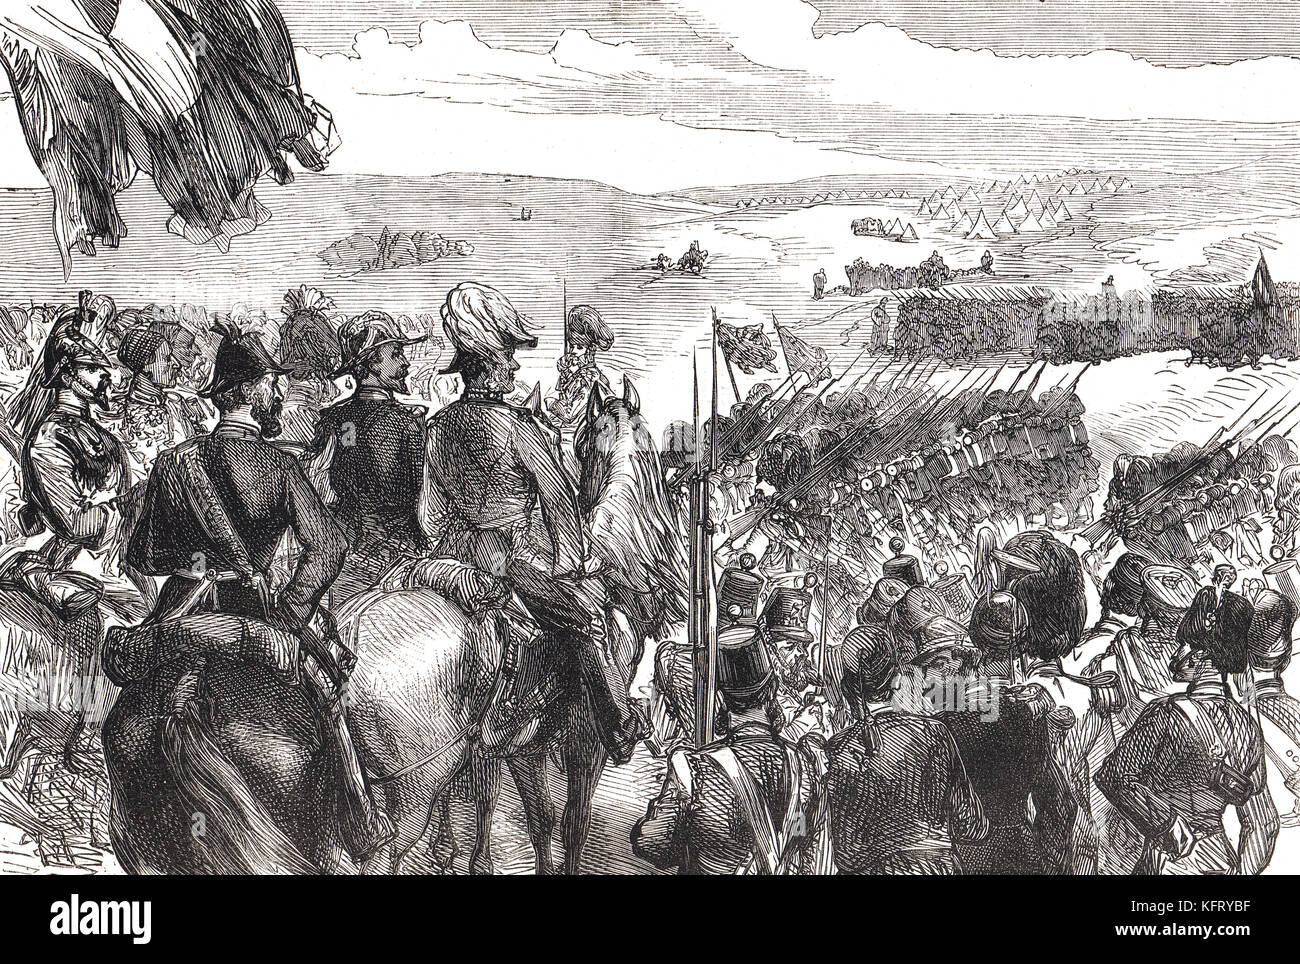 The march past, Battle of Kinburn, 1855. A combined land-naval engagement during the Crimean War - Stock Image